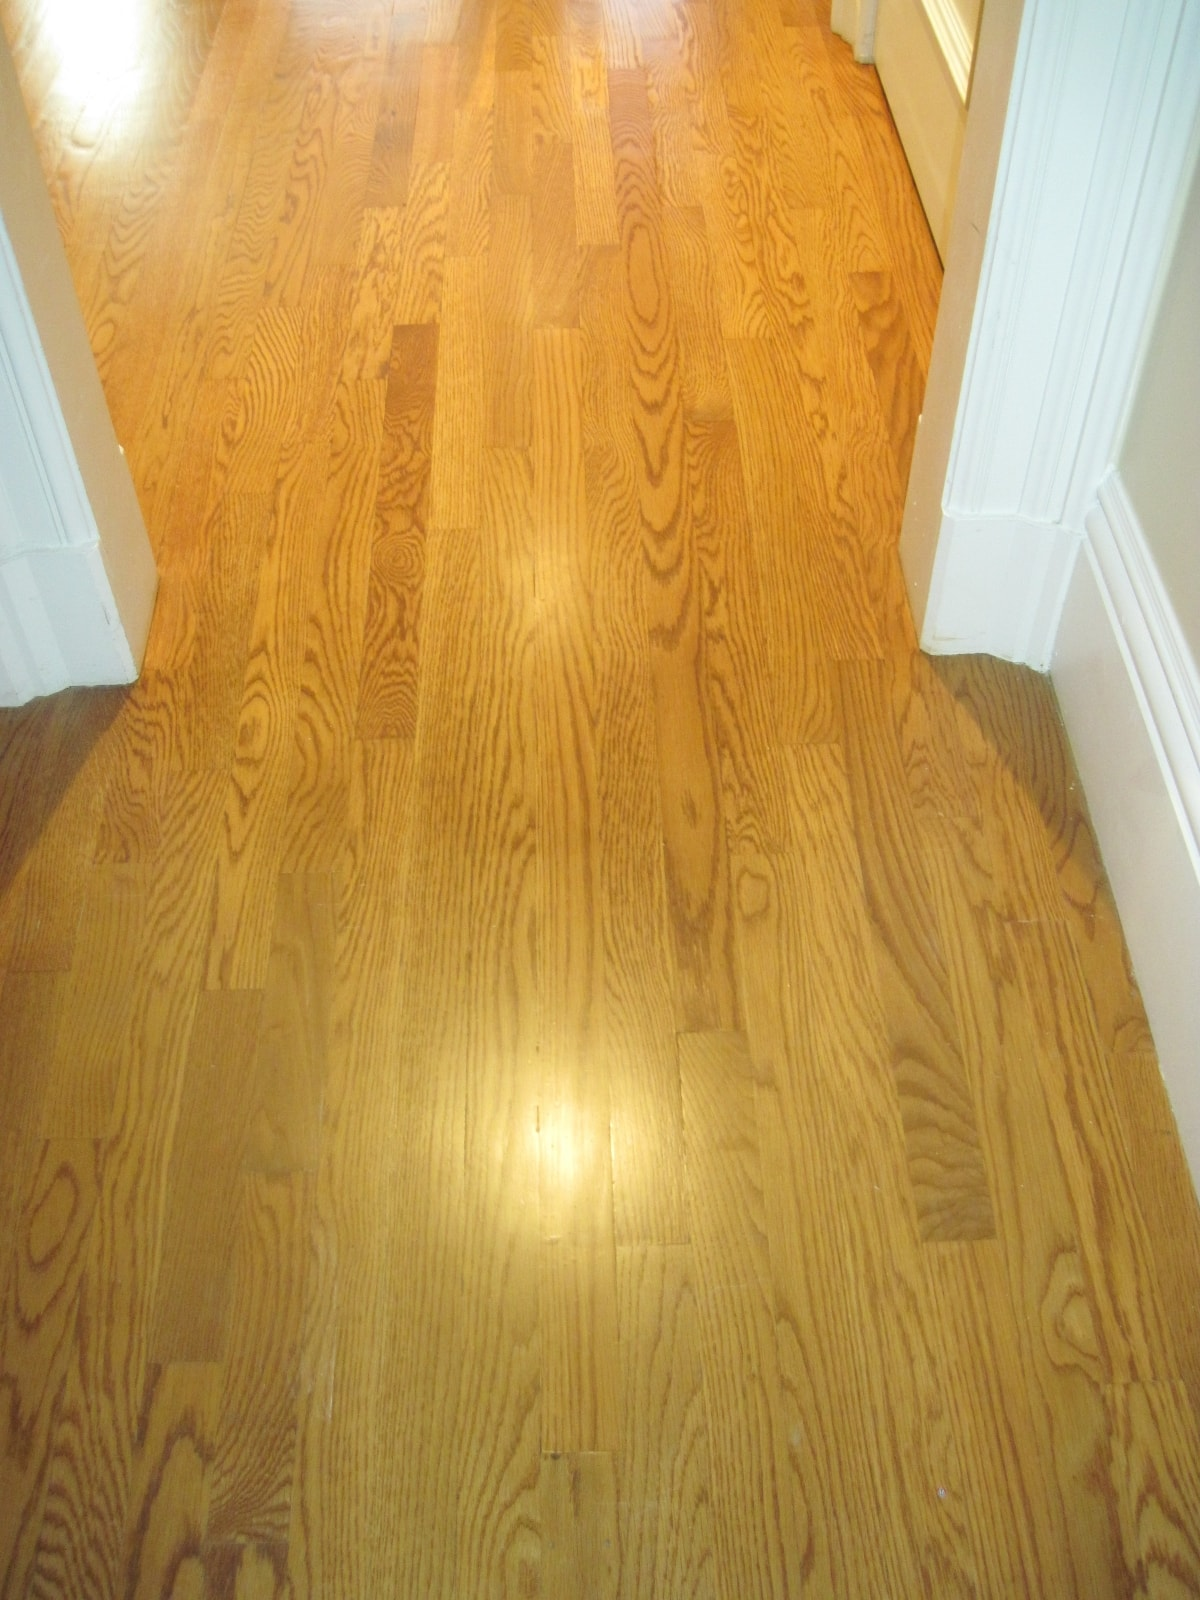 Plain Sawn Red Oak Medford MA 4-min